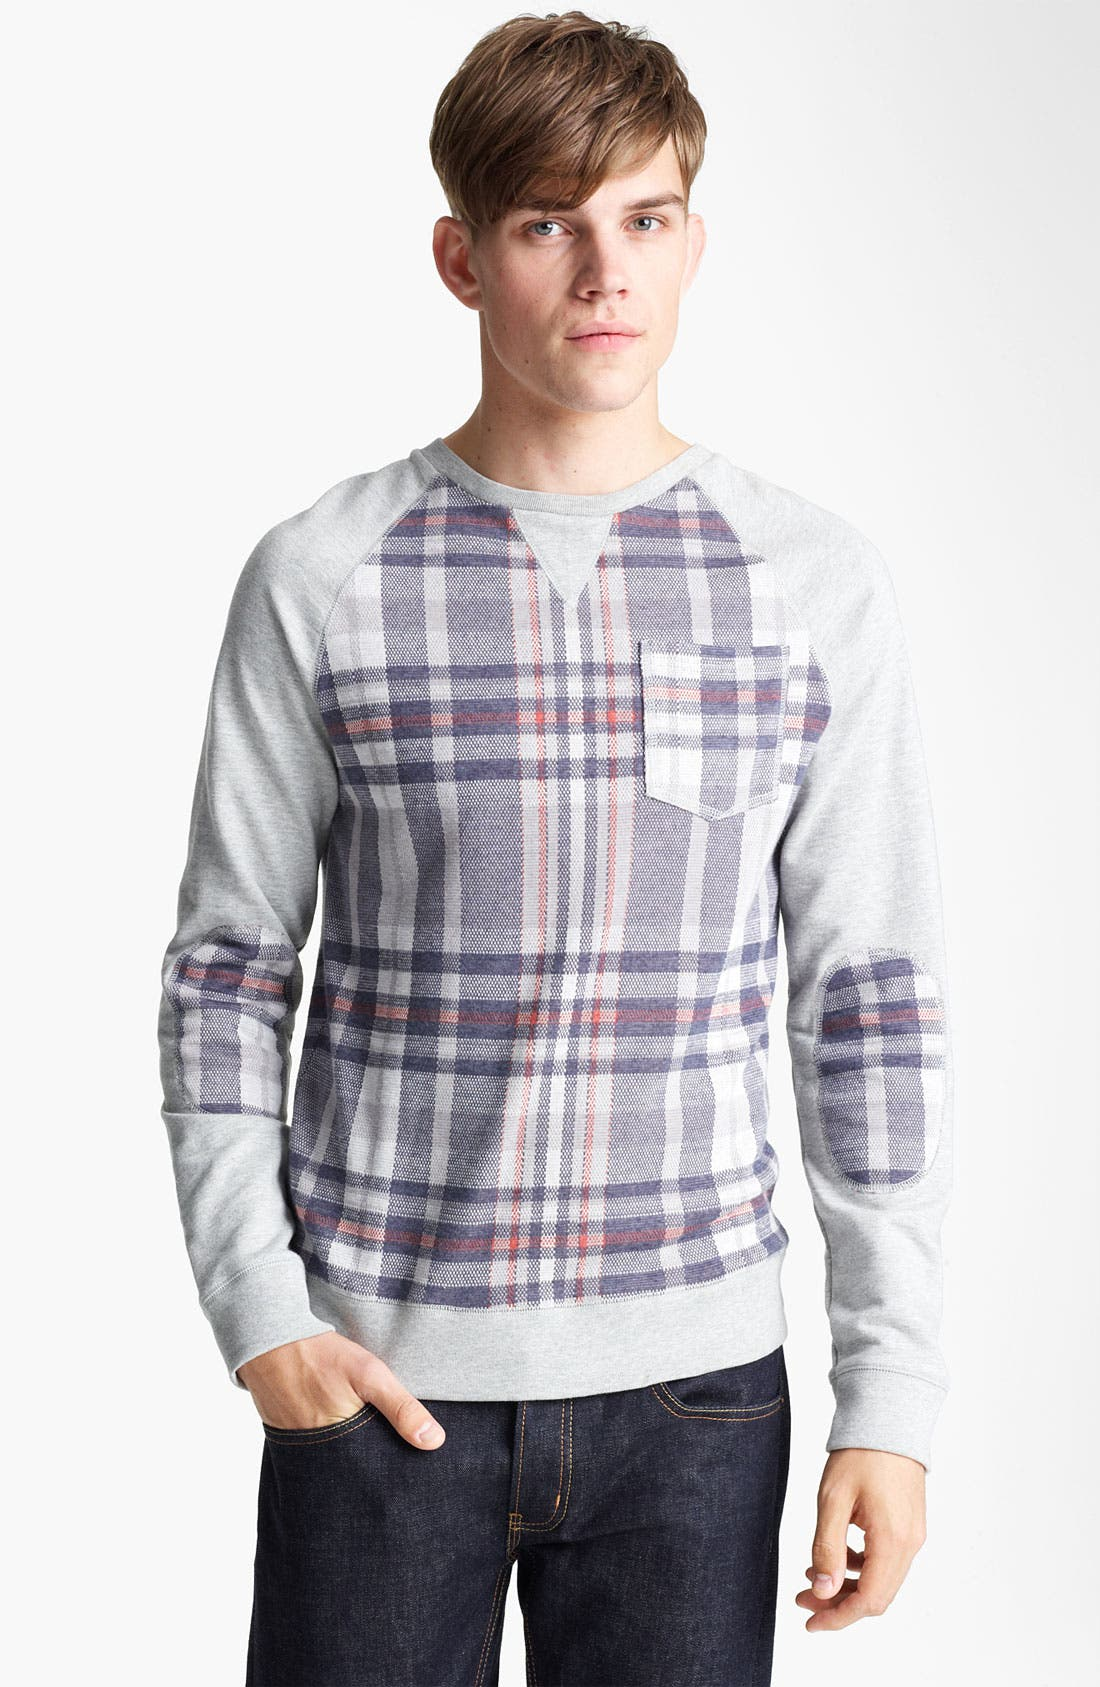 Alternate Image 1 Selected - Topman Check Crewneck Sweatshirt